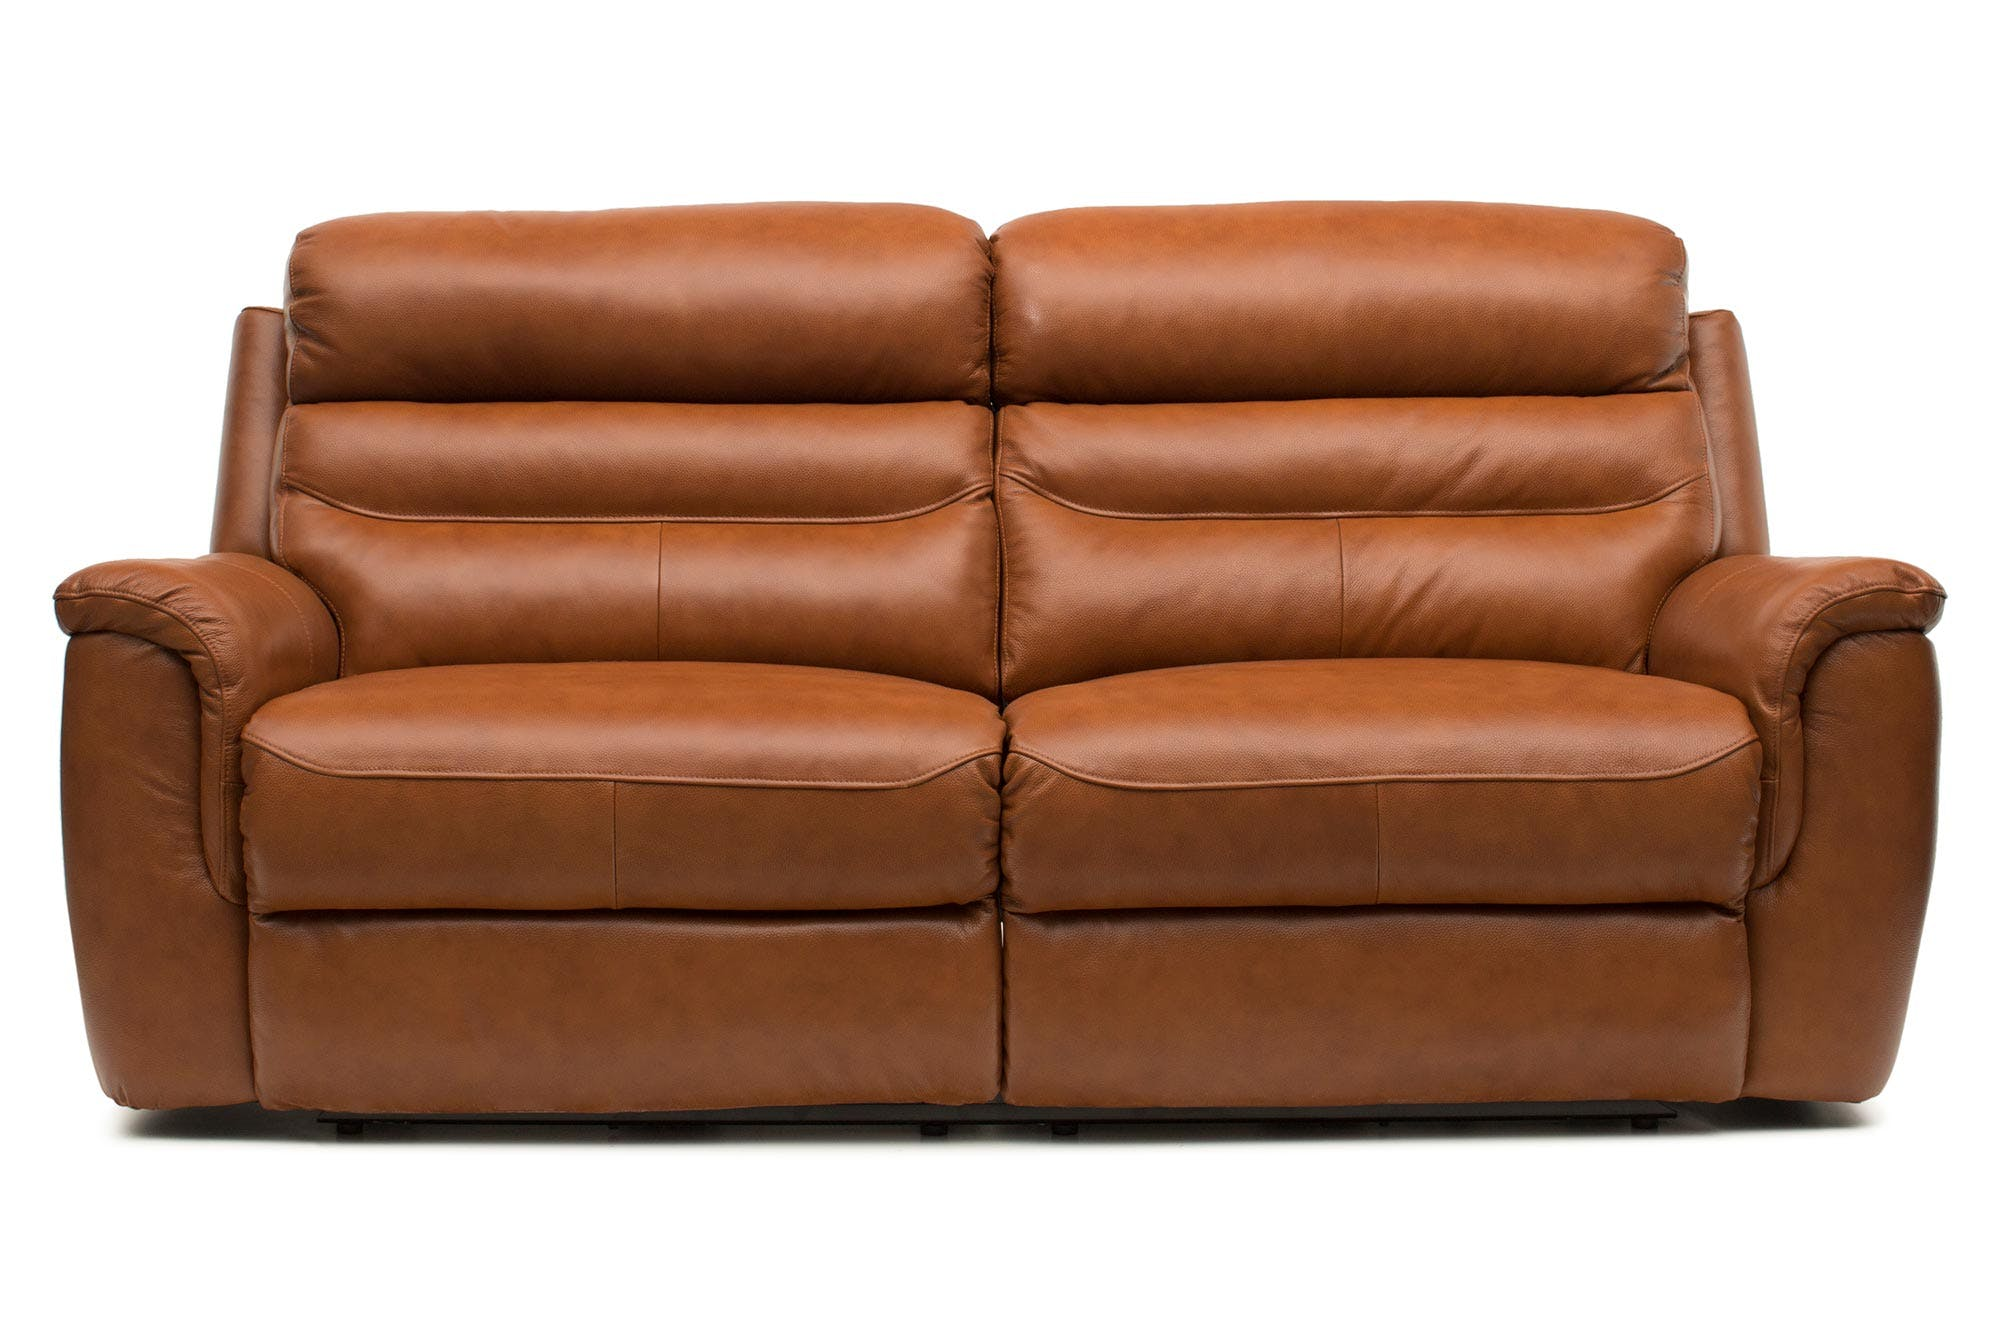 Bayle 3 Seater Recliner Electric Leather